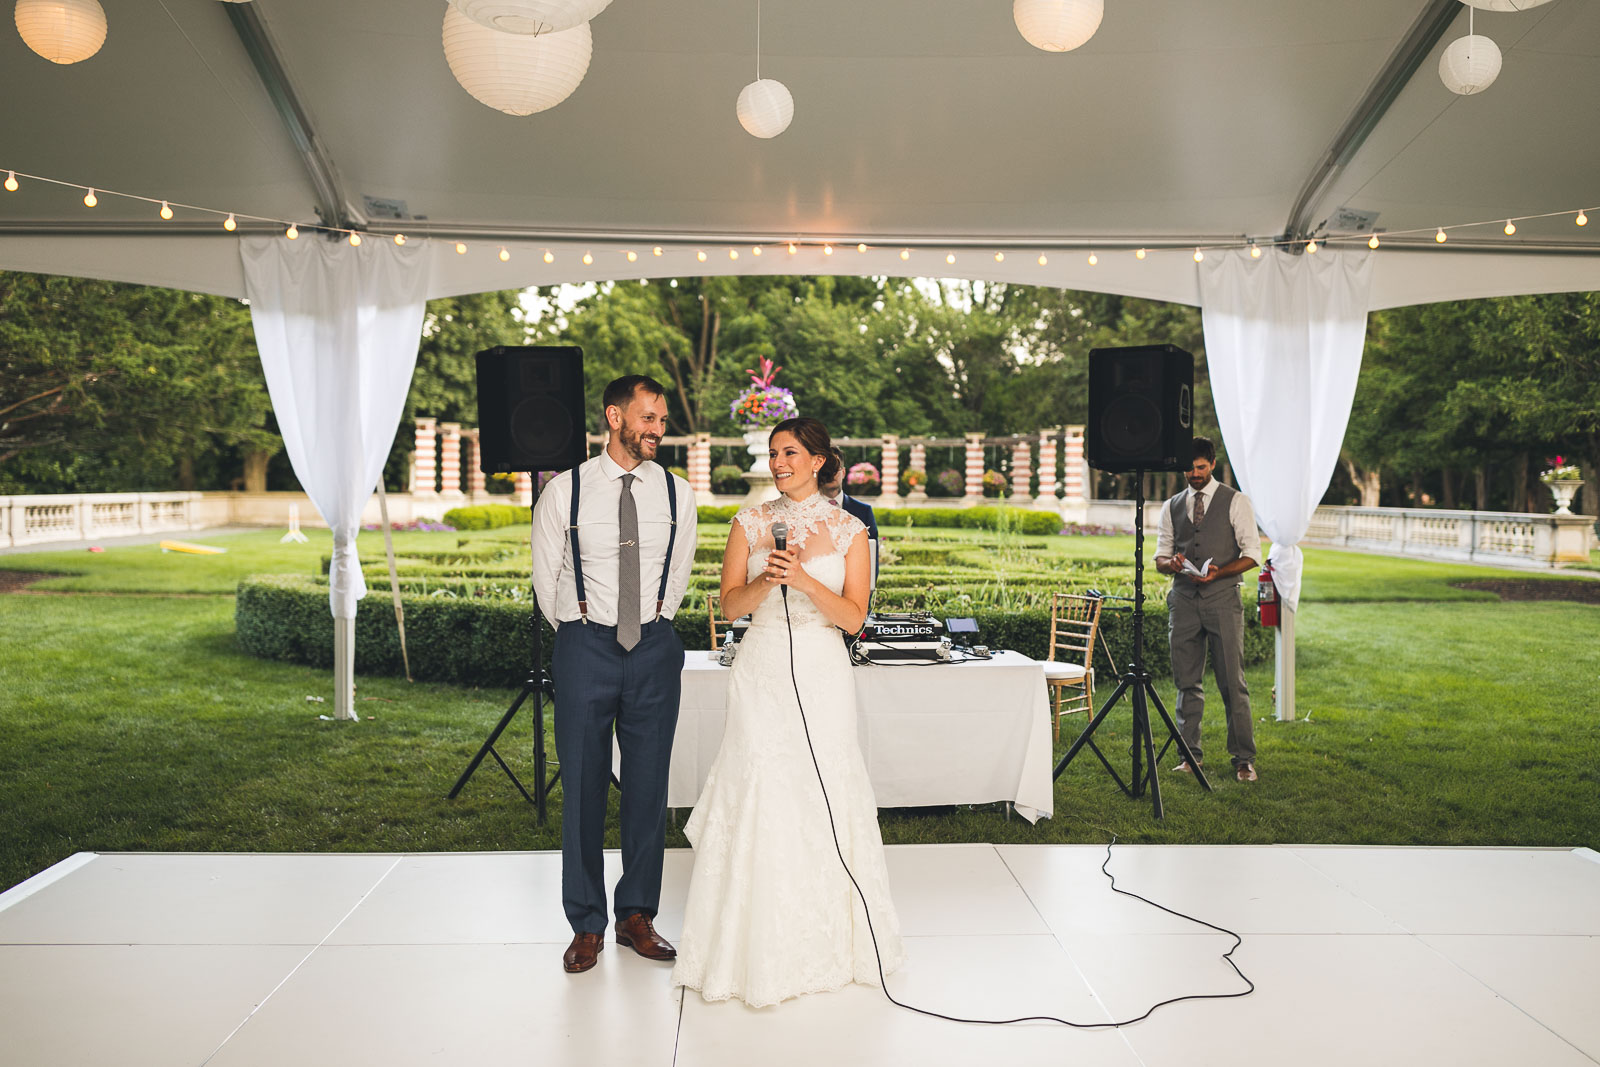 Couple Gives Speech